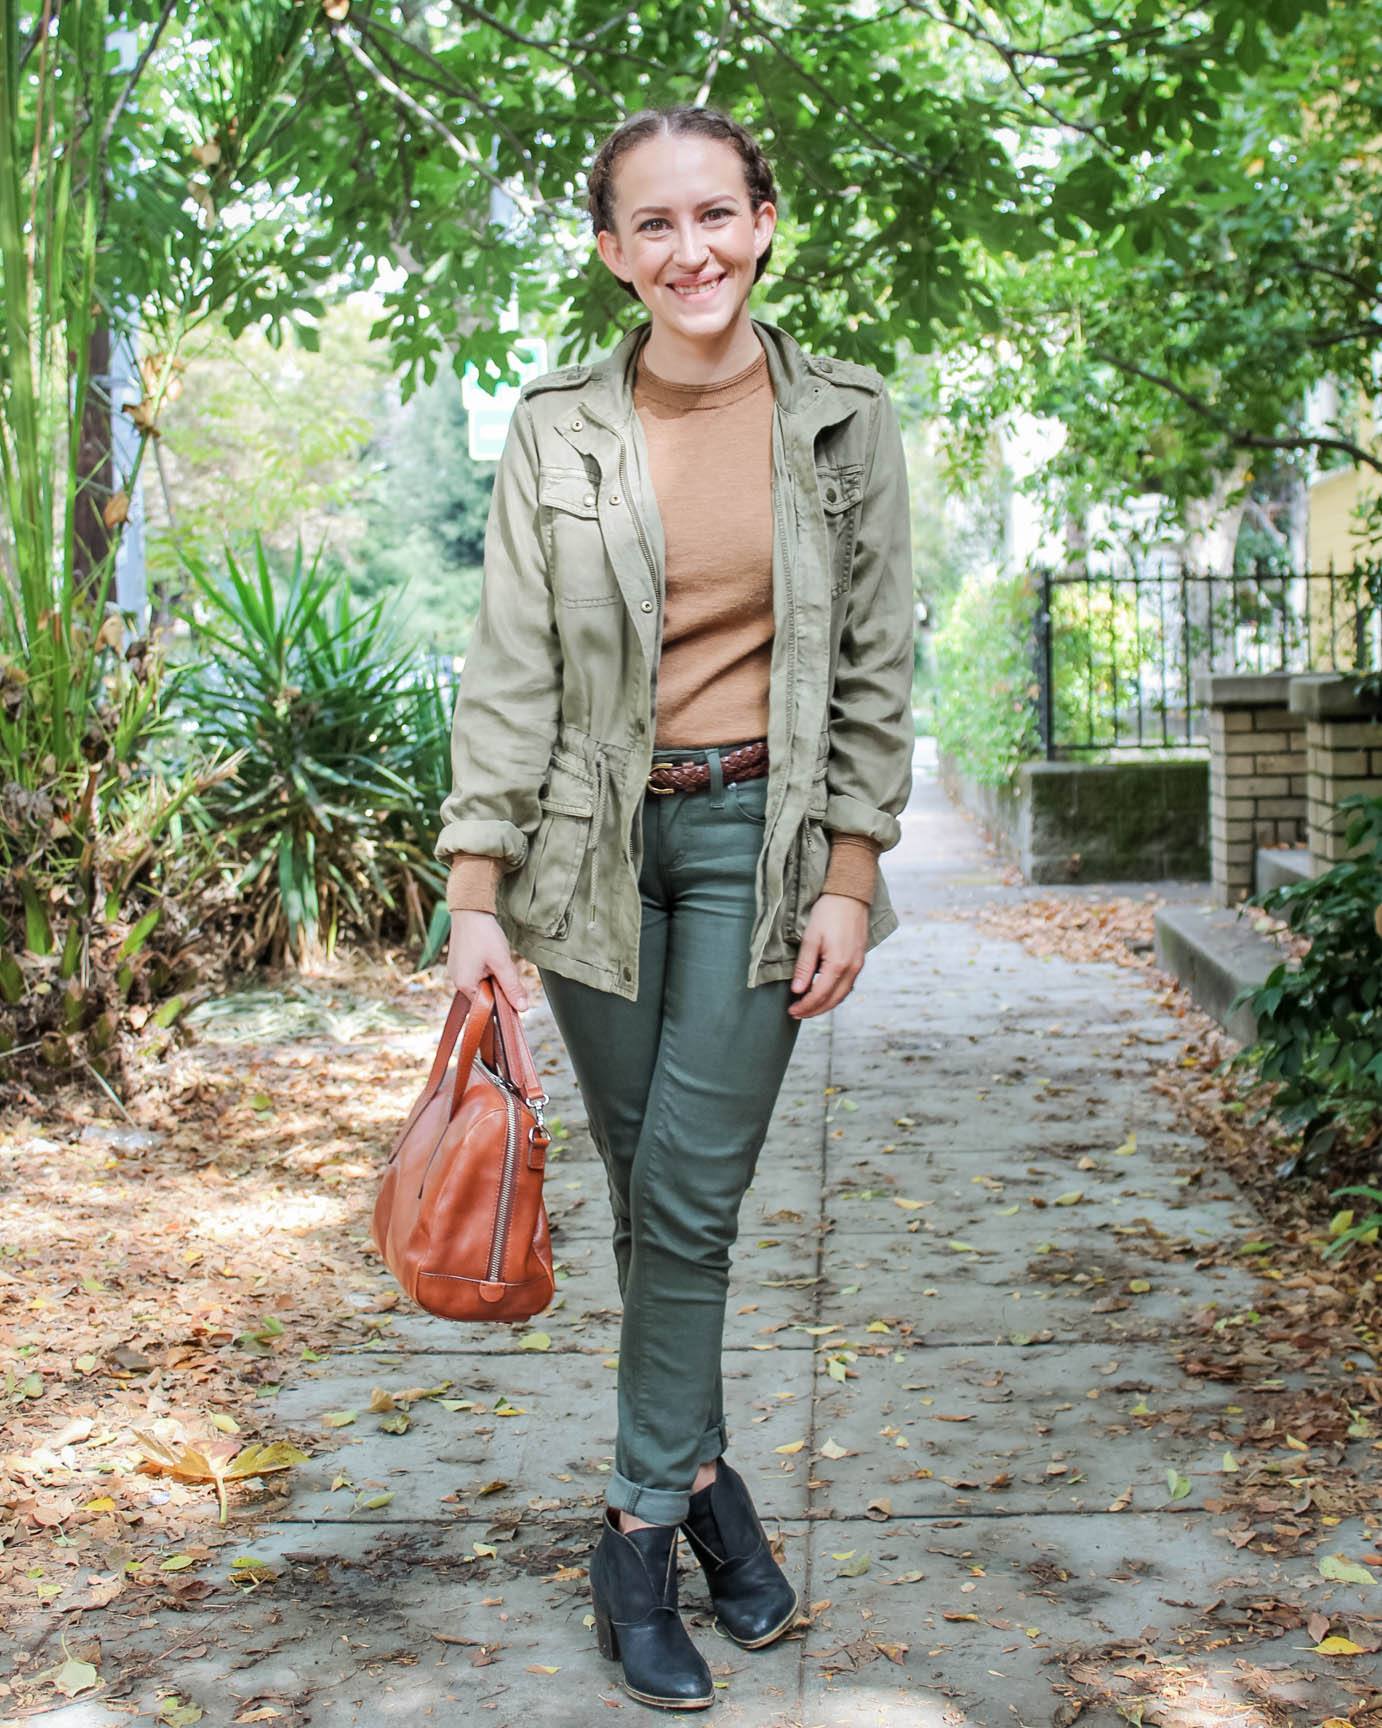 Capsule wardrobe outfit fall 2016 | what to wear to an interview | tintedgreenblog.com